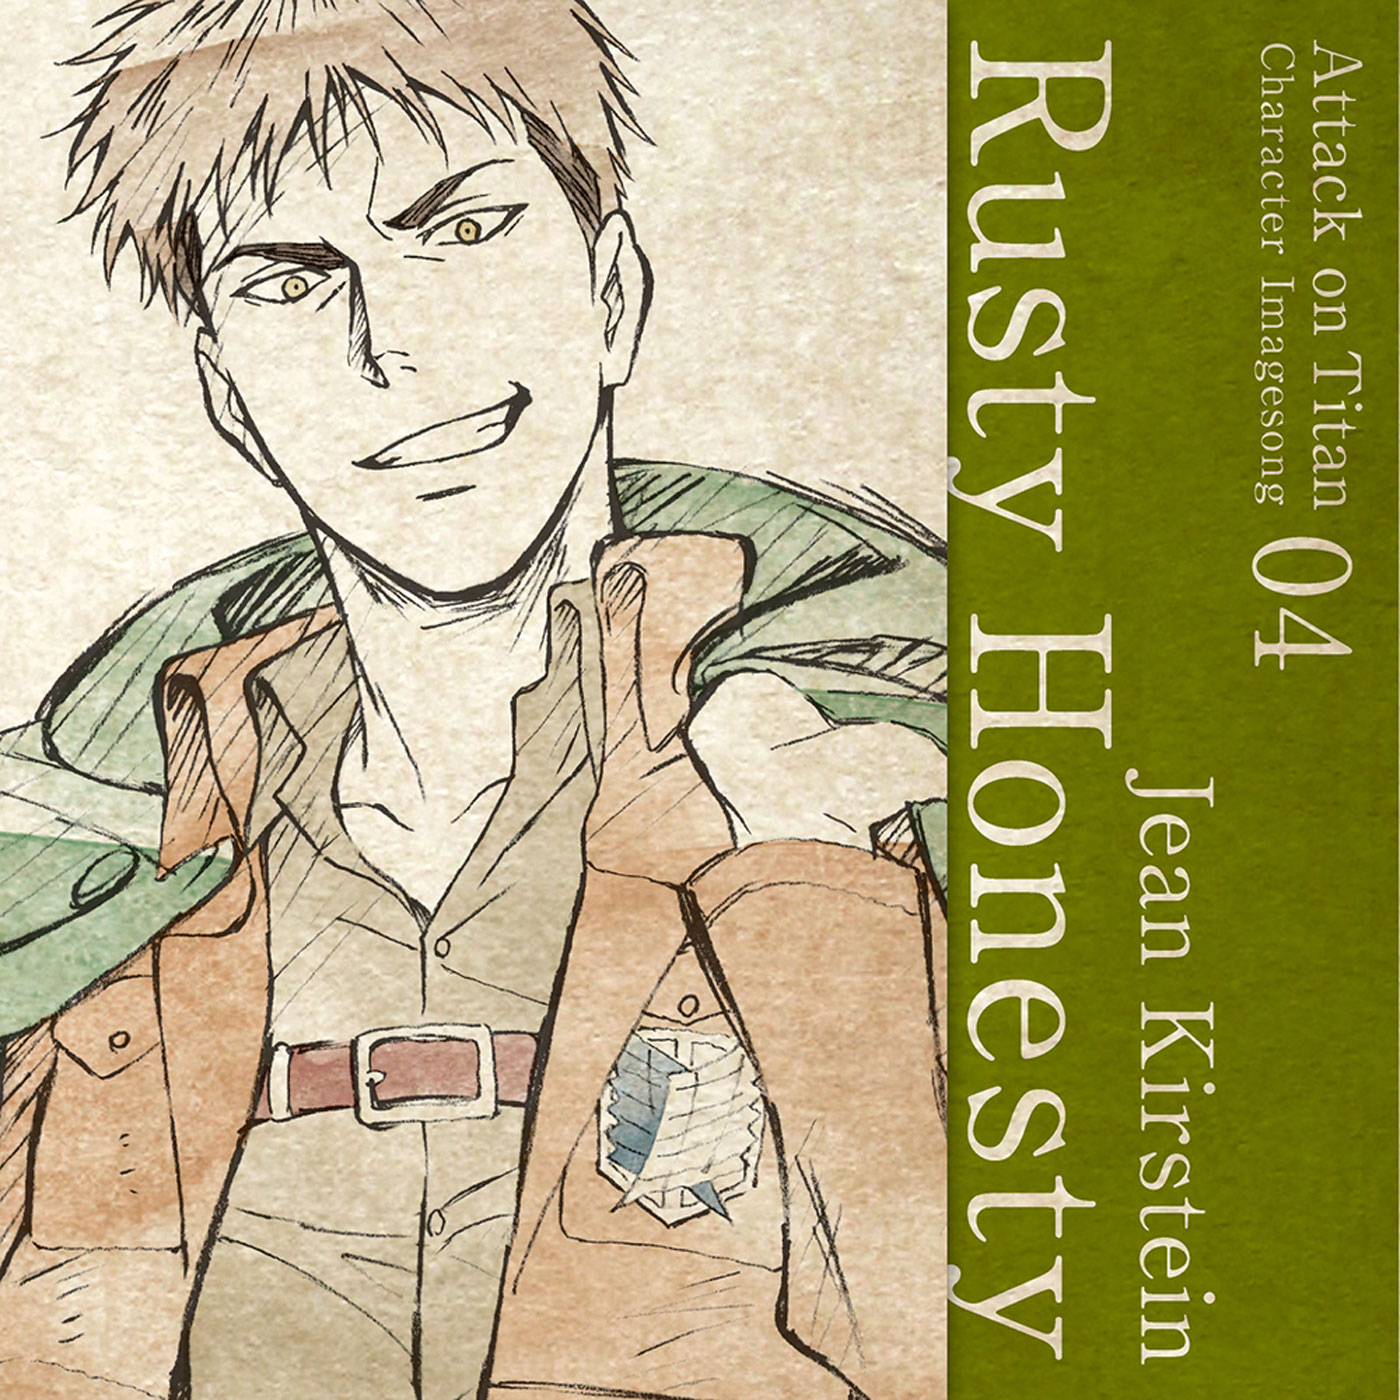 Character Image Song 04 : Rusty Honesty / Jean Kirstein